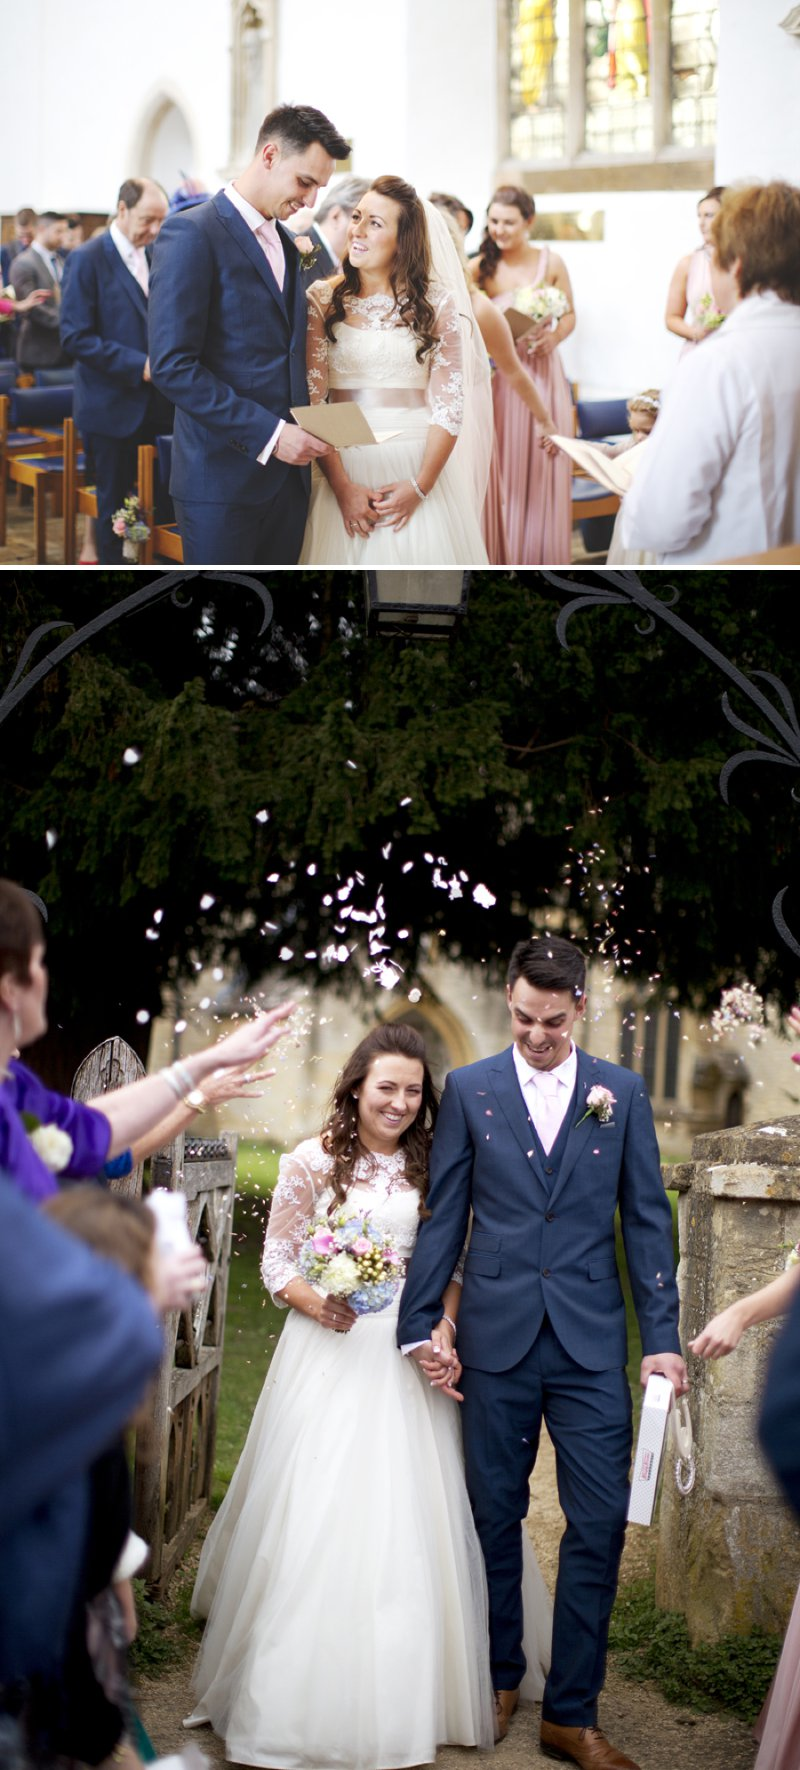 Rustic Wedding At Hyde Barn In Stow On The Wold With A Pale Pink Colour Scheme And Bride In Samantha By Sassi Holford With Bridesmaids In Pale Pink Twobirds Dresses With Groom In Navy Reiss Suit 6